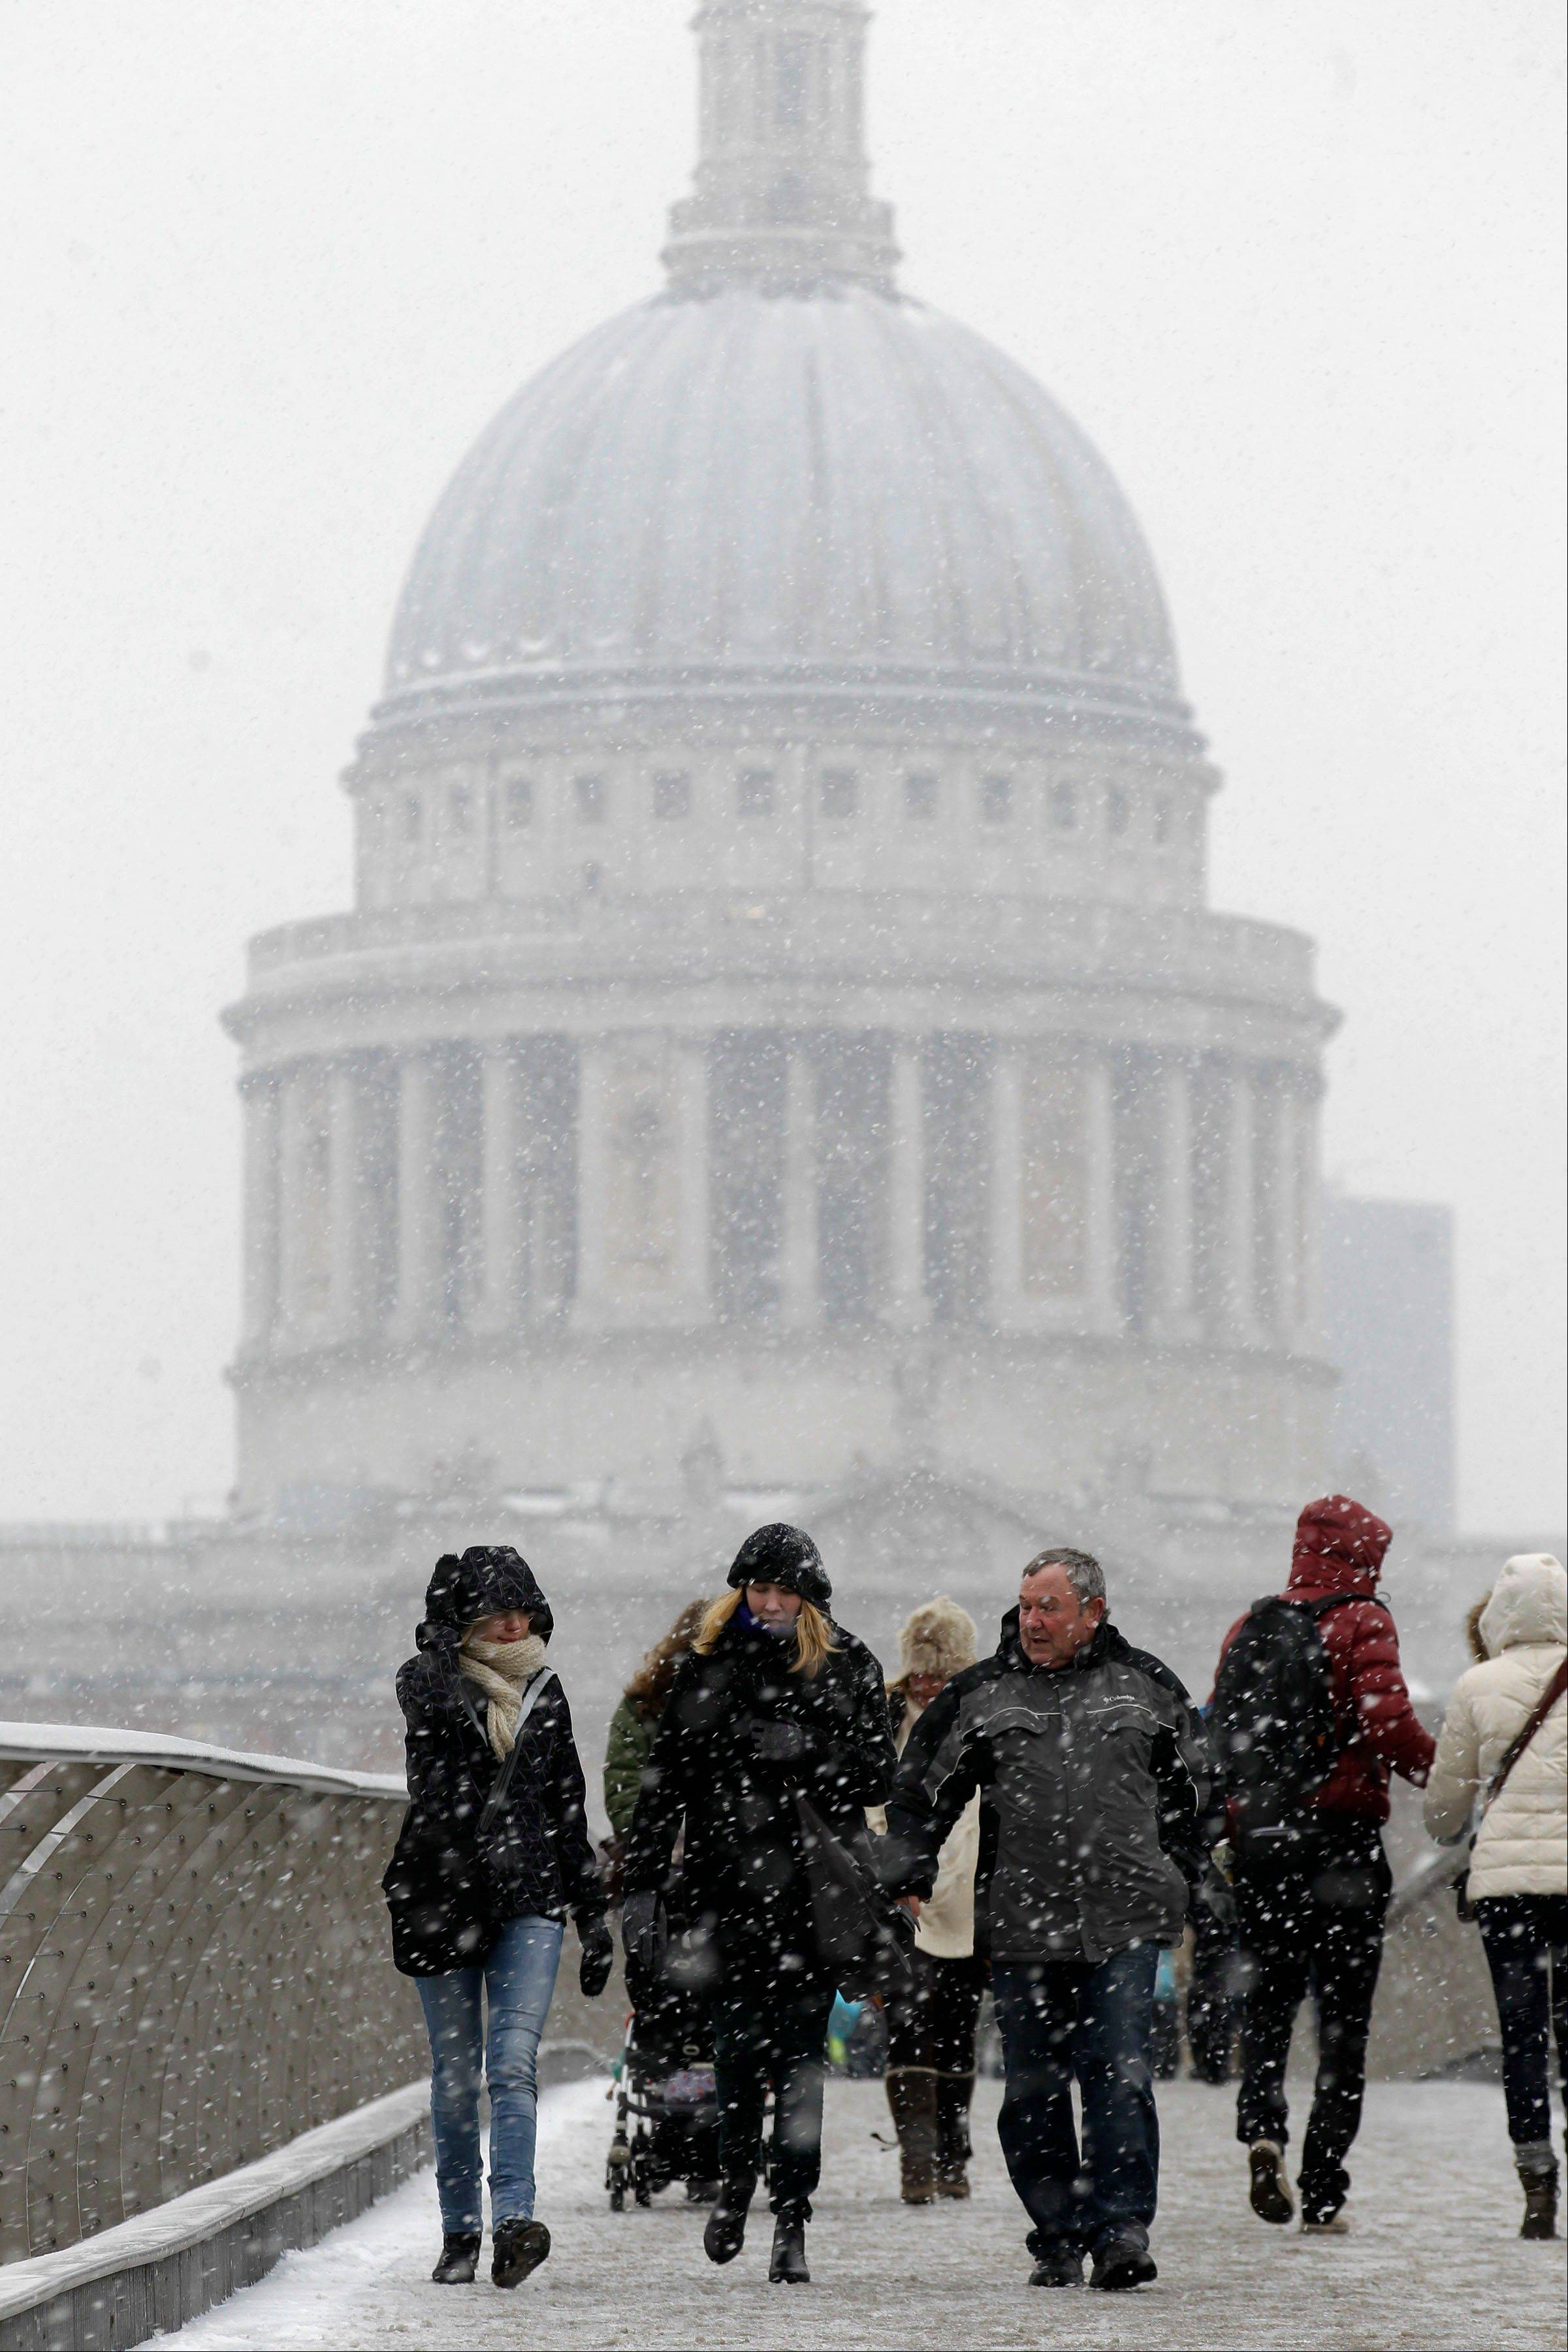 People walk across a snowy Millennium Bridge near St. Paul's Cathedral in London.